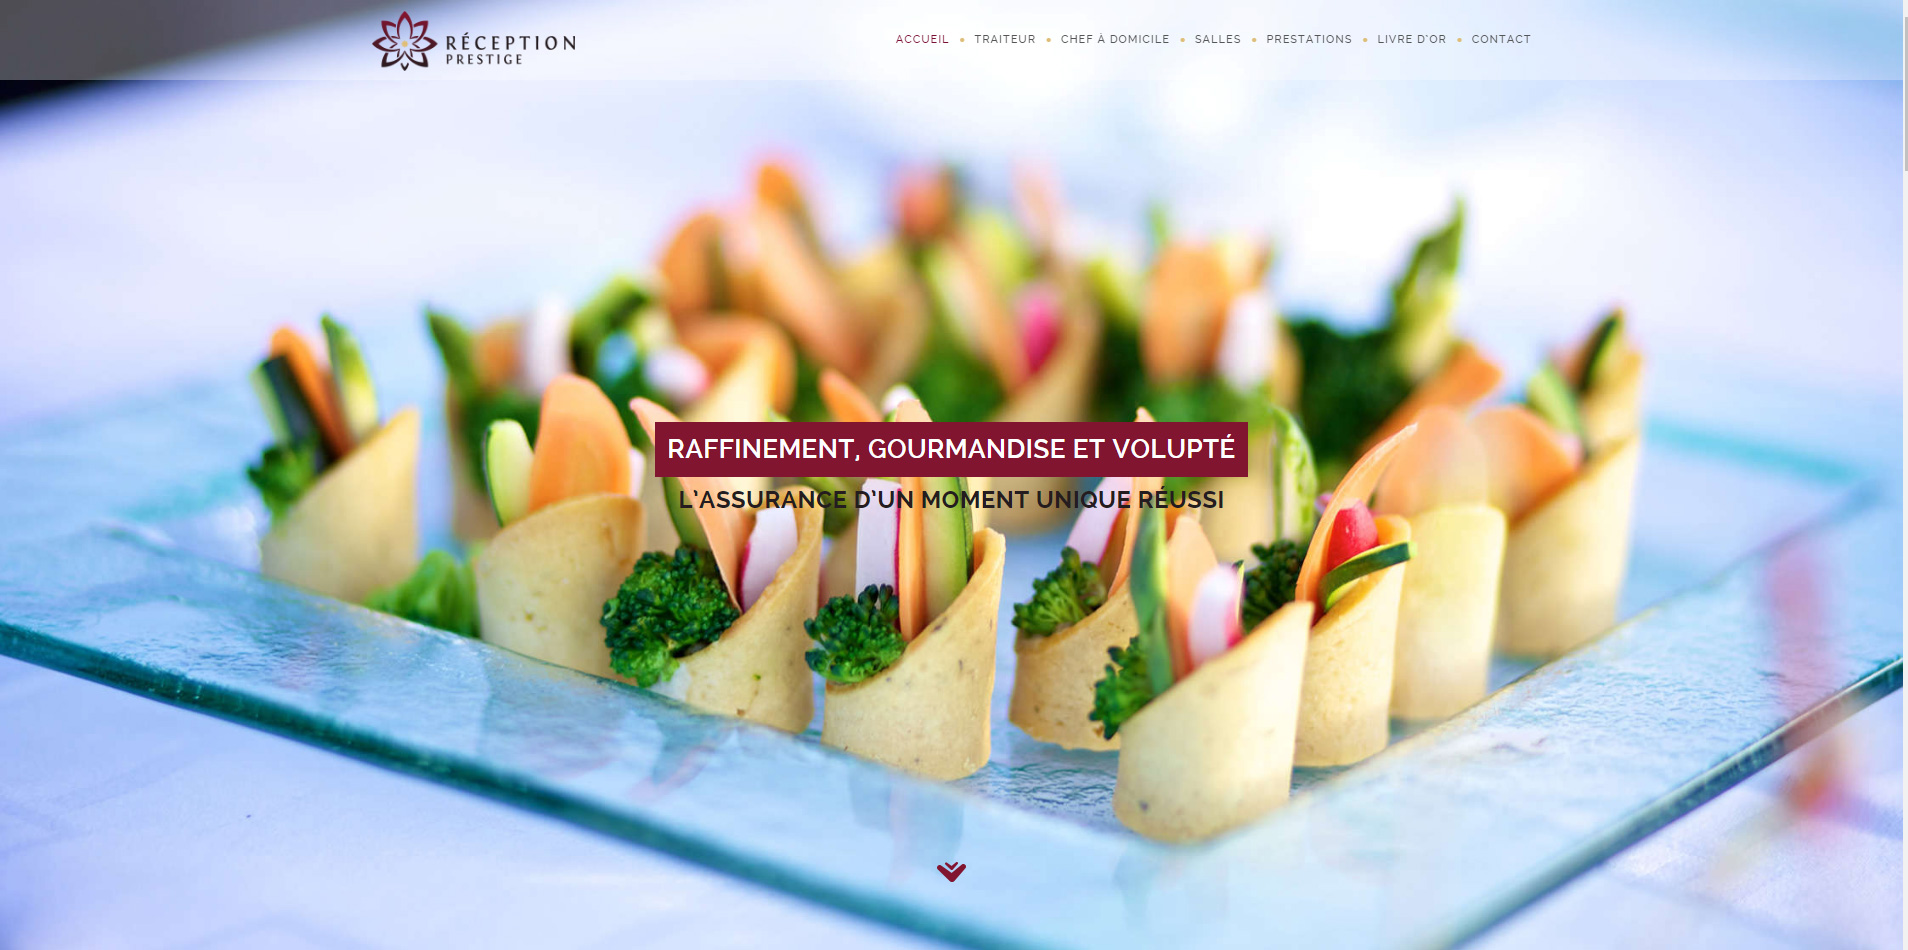 Chef R. Hoefferlin website header